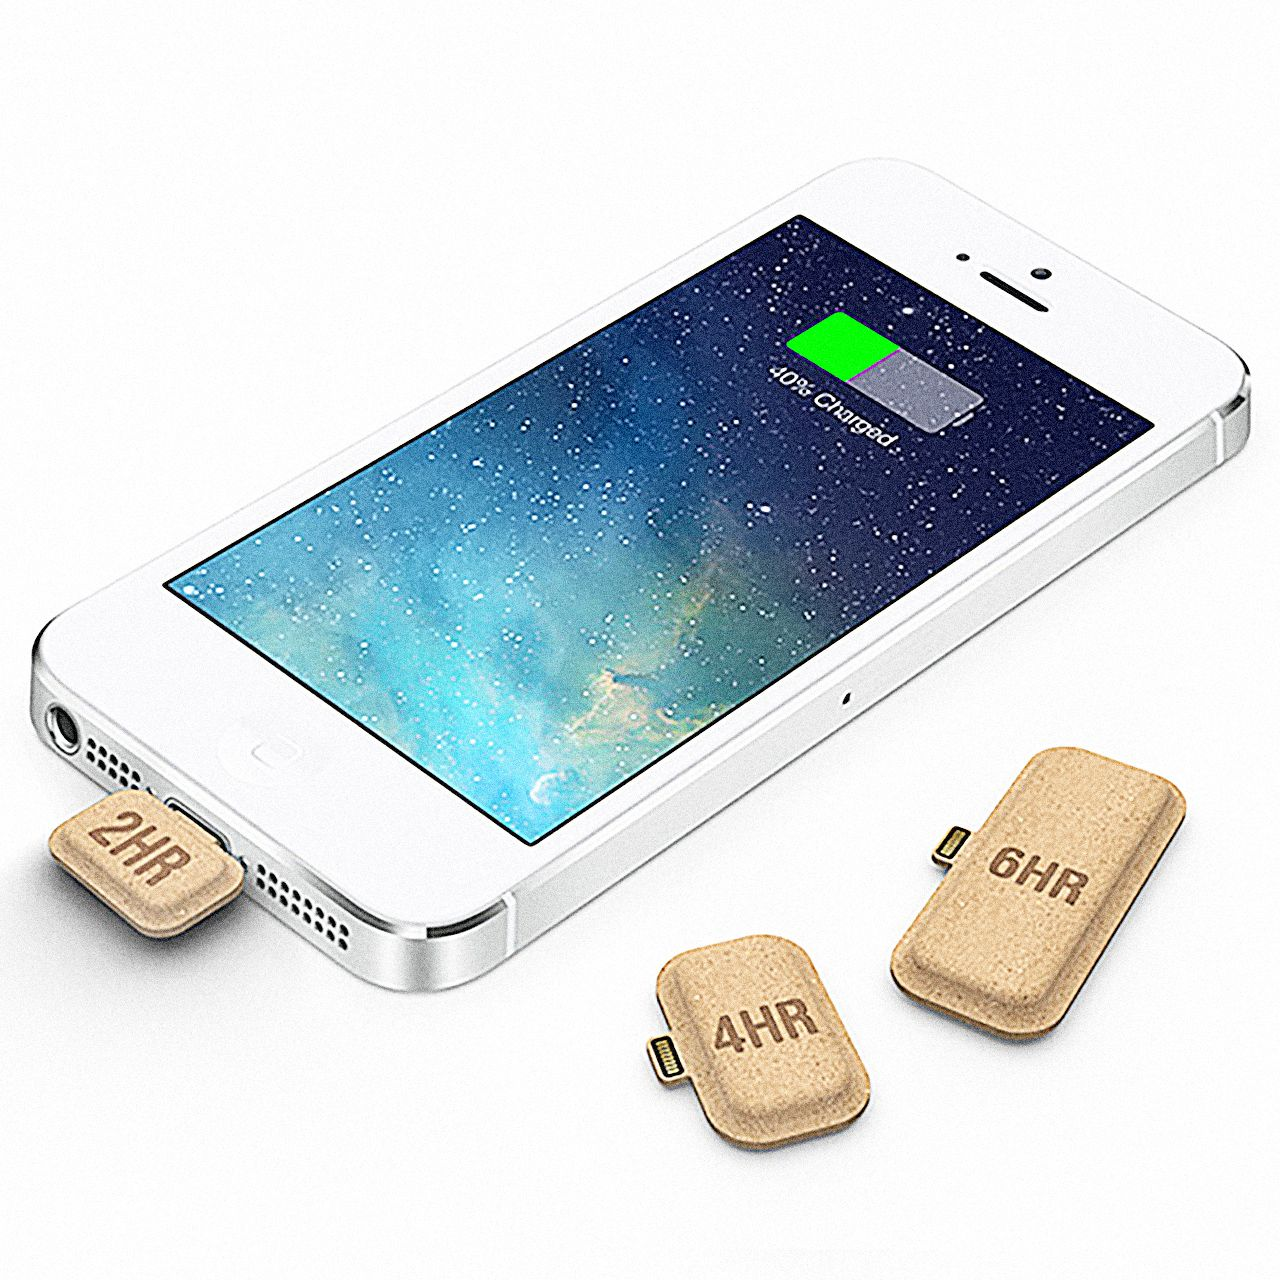 Handy Laden This Tiny Cardboard Battery Is Like A Vitamin For Your Smartphone